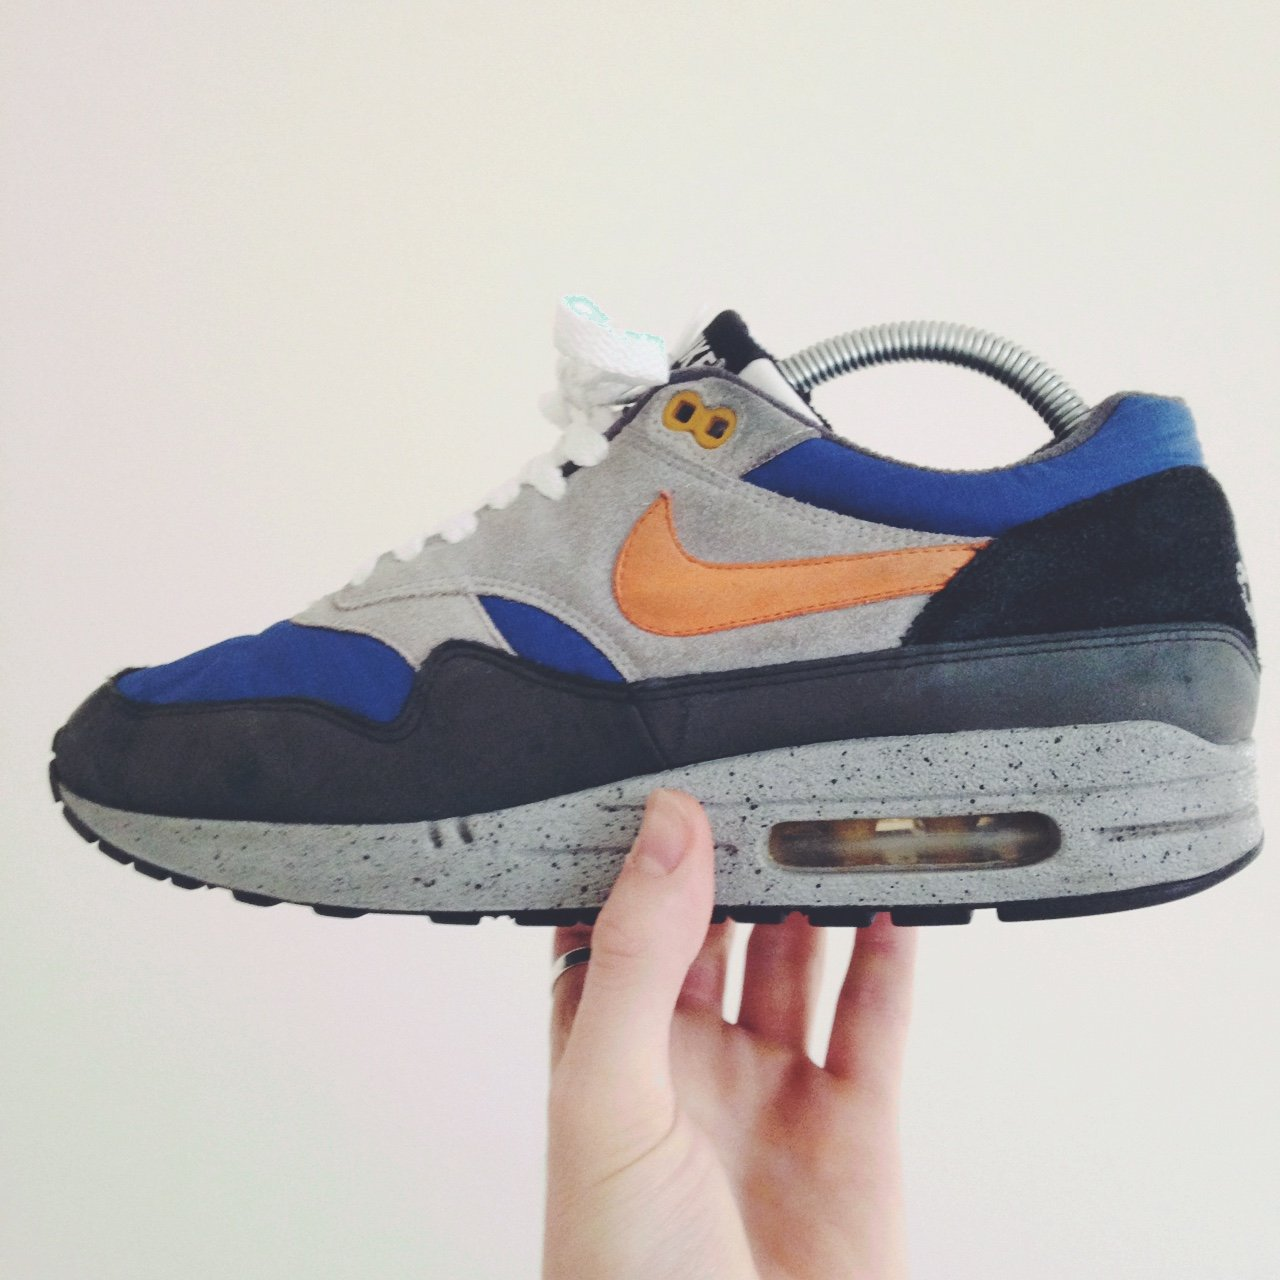 5a5e3f108d4 Nike air max 1  Skull Pack  good condition. Not sure about 8 - Depop